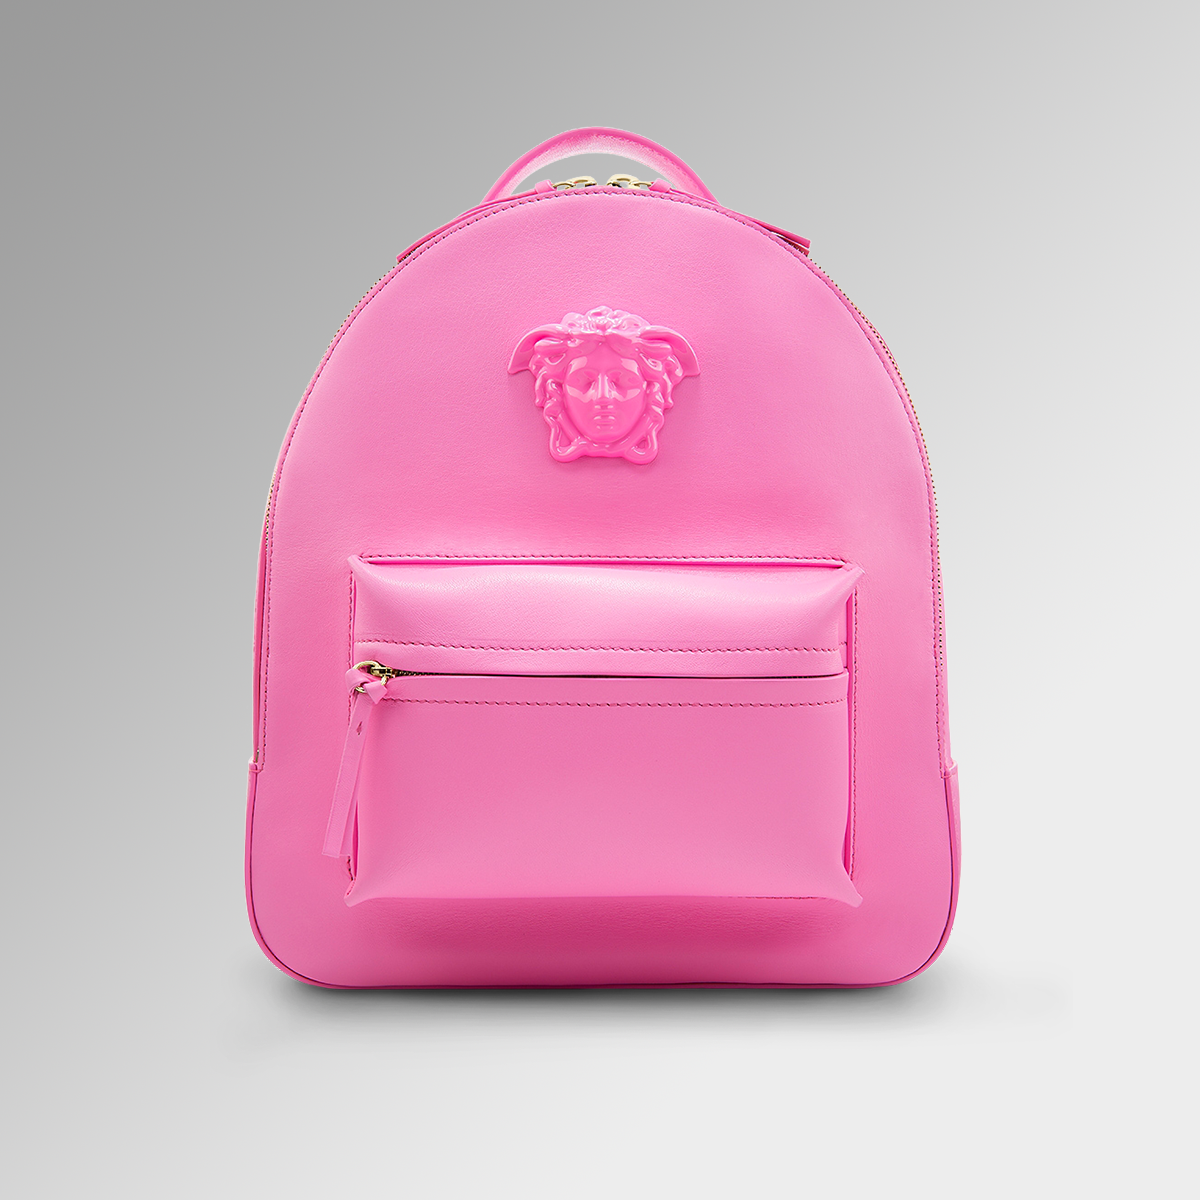 5b7f3809a2ef Be a show stopper with the  Versace hot pink backpack. Find more  Versace  backpacks on versace.com